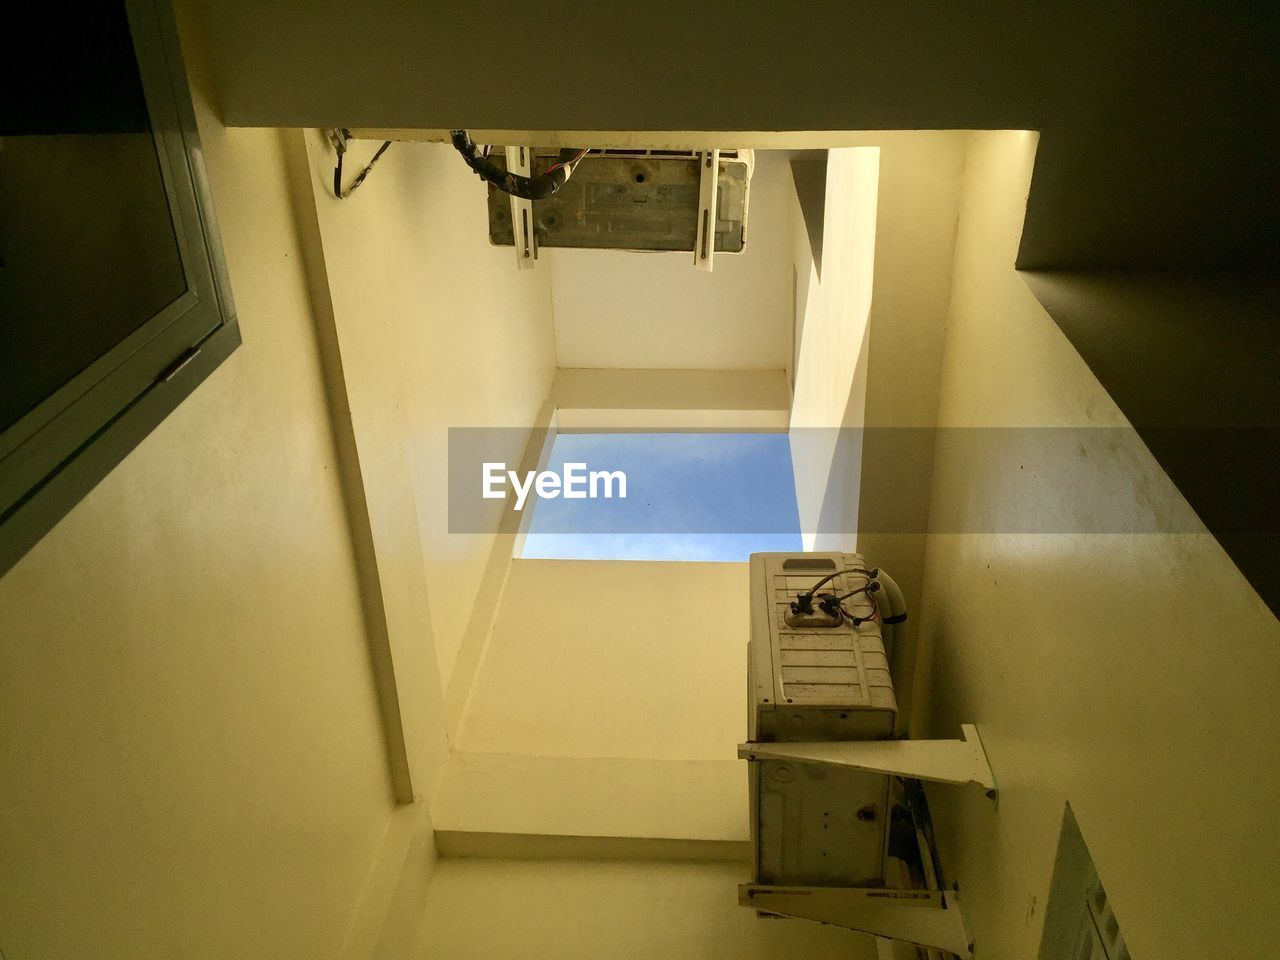 indoors, architecture, wall - building feature, no people, home interior, building, staircase, empty, built structure, door, high angle view, open, entrance, security, domestic room, sunlight, absence, technology, railing, illuminated, directly below, ceiling